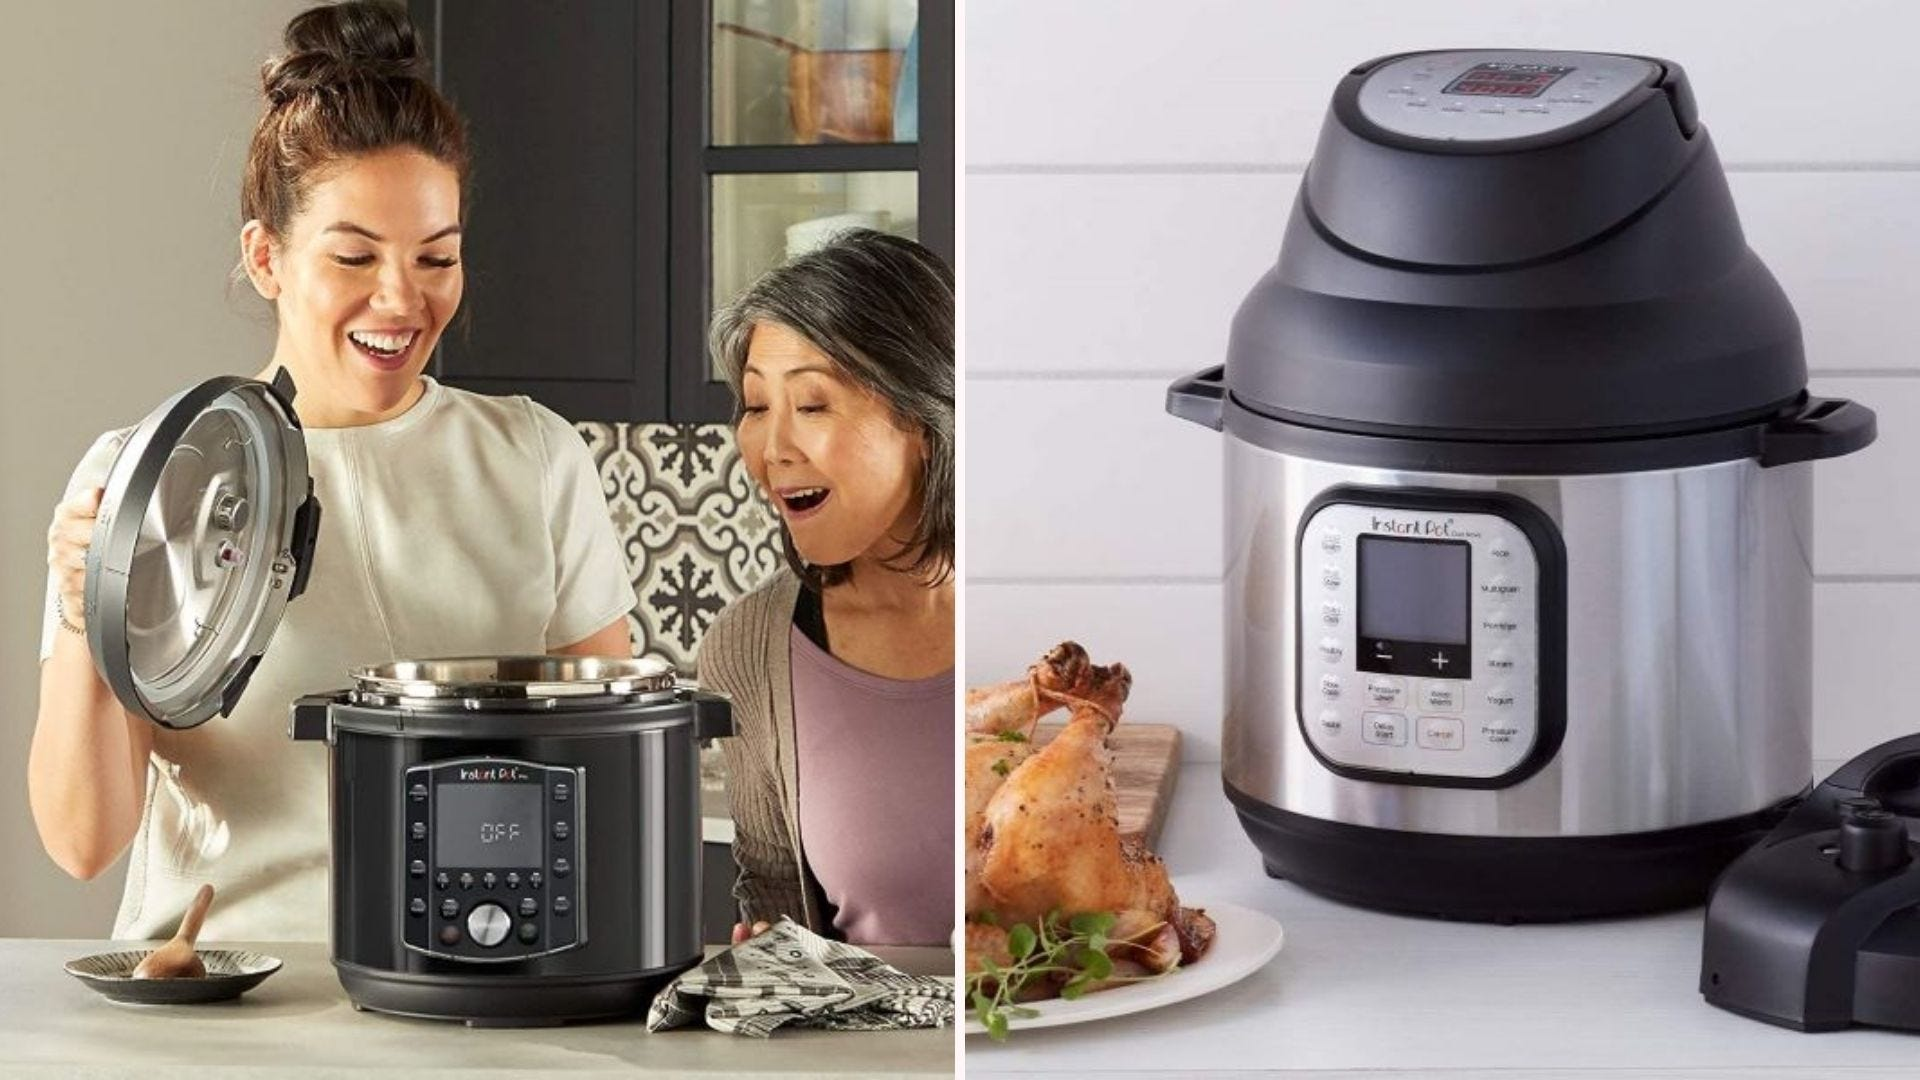 Two women looking in an Instant Pot Pro, and an Instant Pot sitting on a counter with the air fryer lid on.